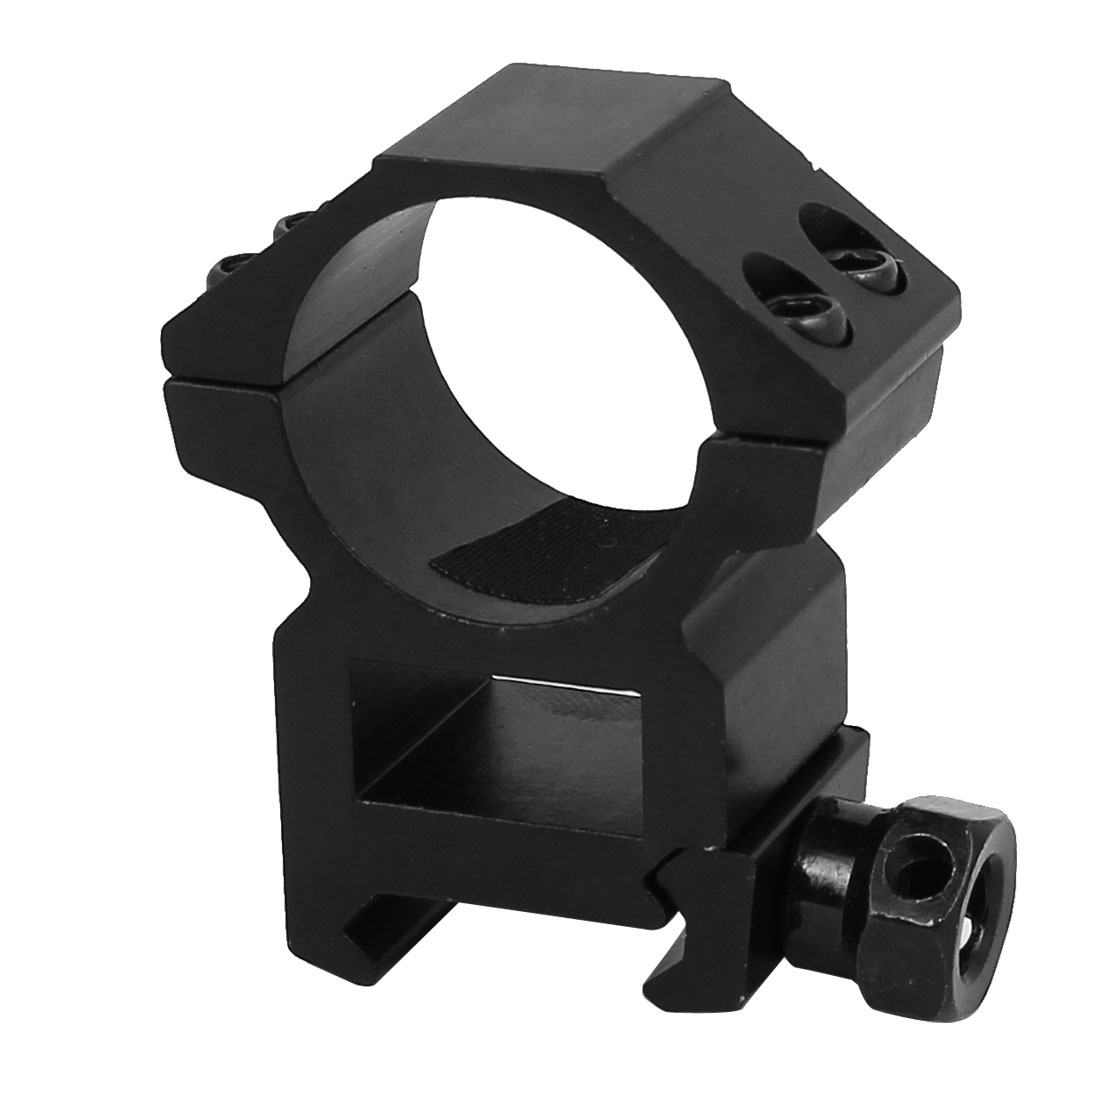 "Laser Flashlight Barrel Adapter Clamp Clip 51mm x 49mm x 20mm for 1"" Rail"